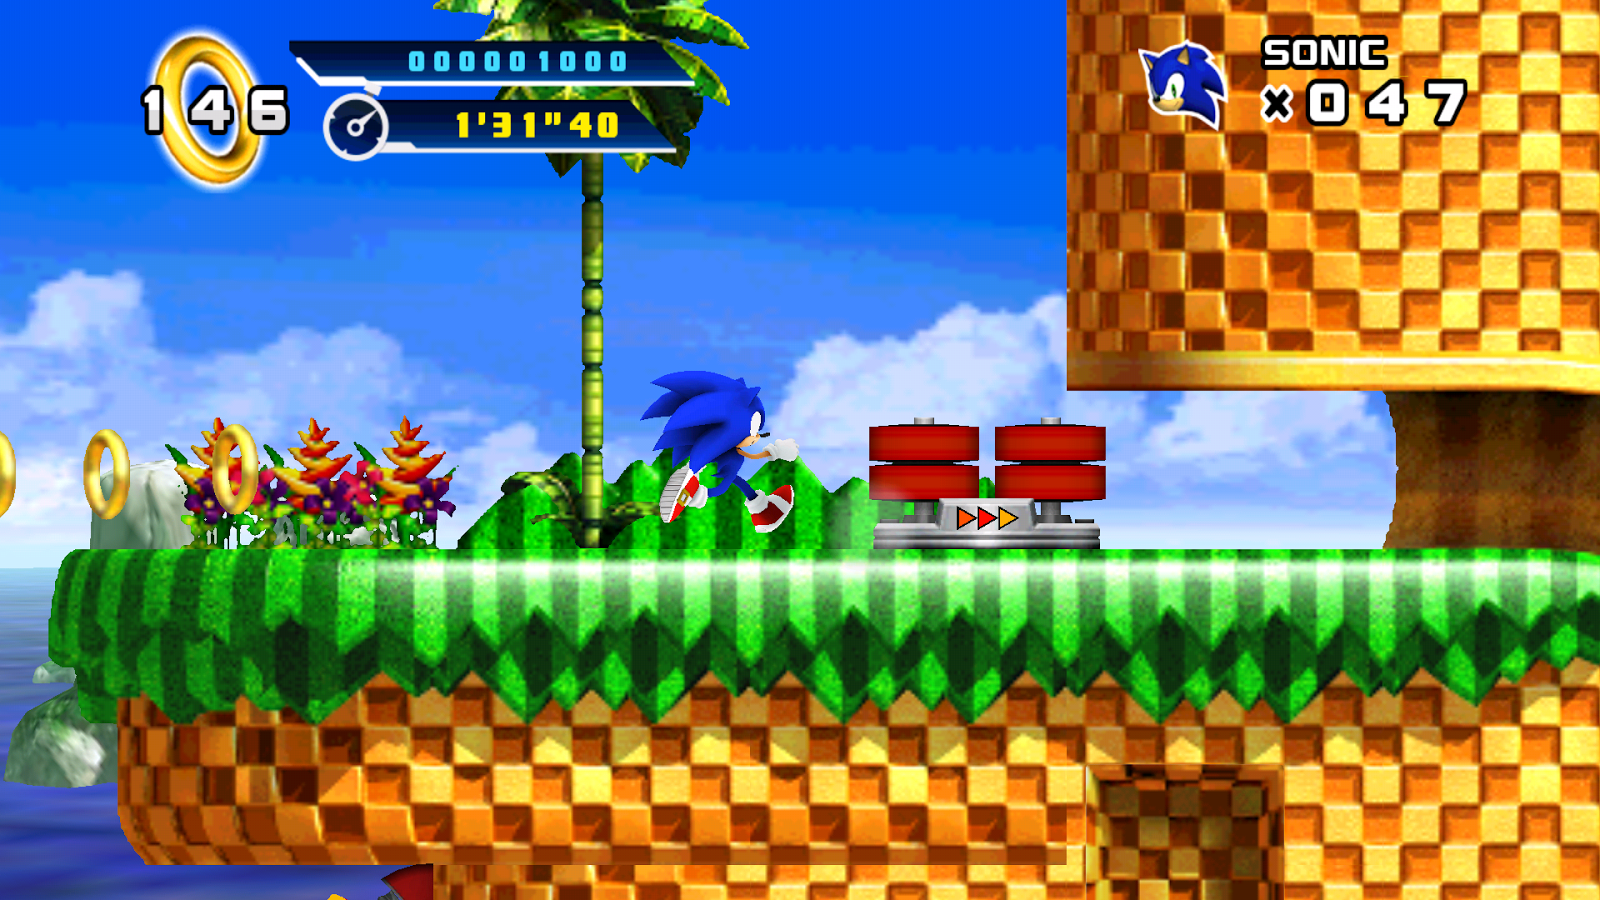 Sonic 4™ Episode I Screenshot 6